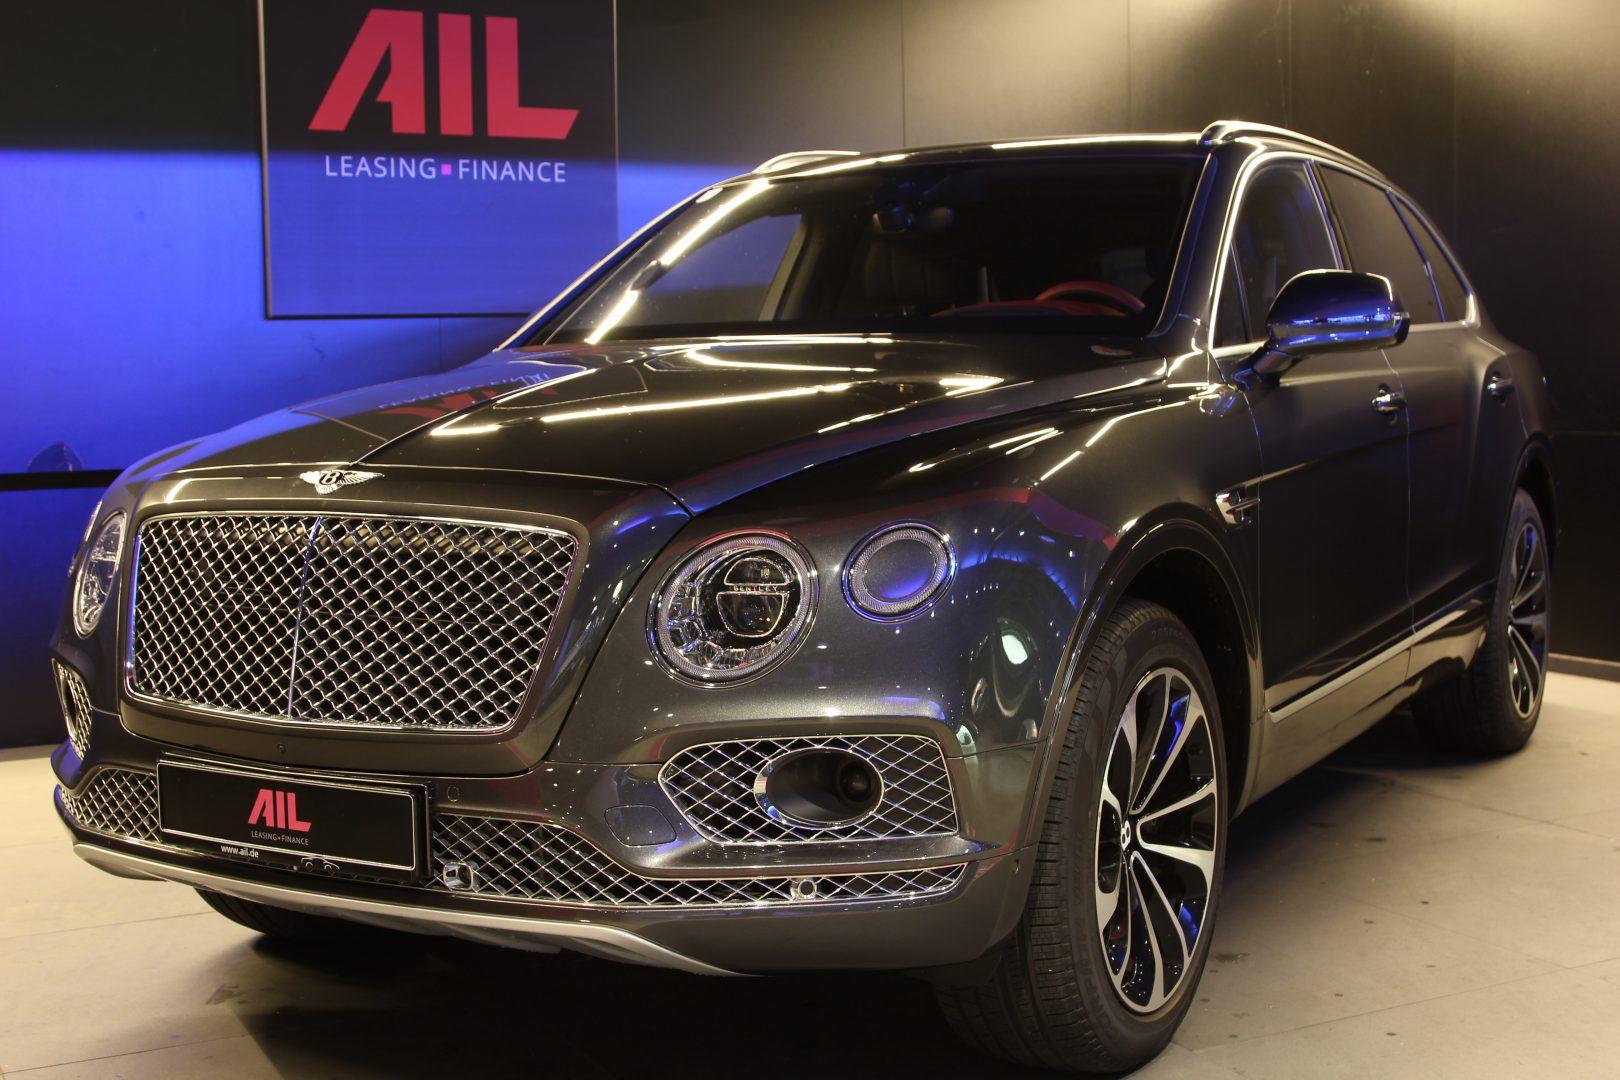 AIL Bentley Bentayga V12 Bi-Turbo RSE Panorama DAB 4